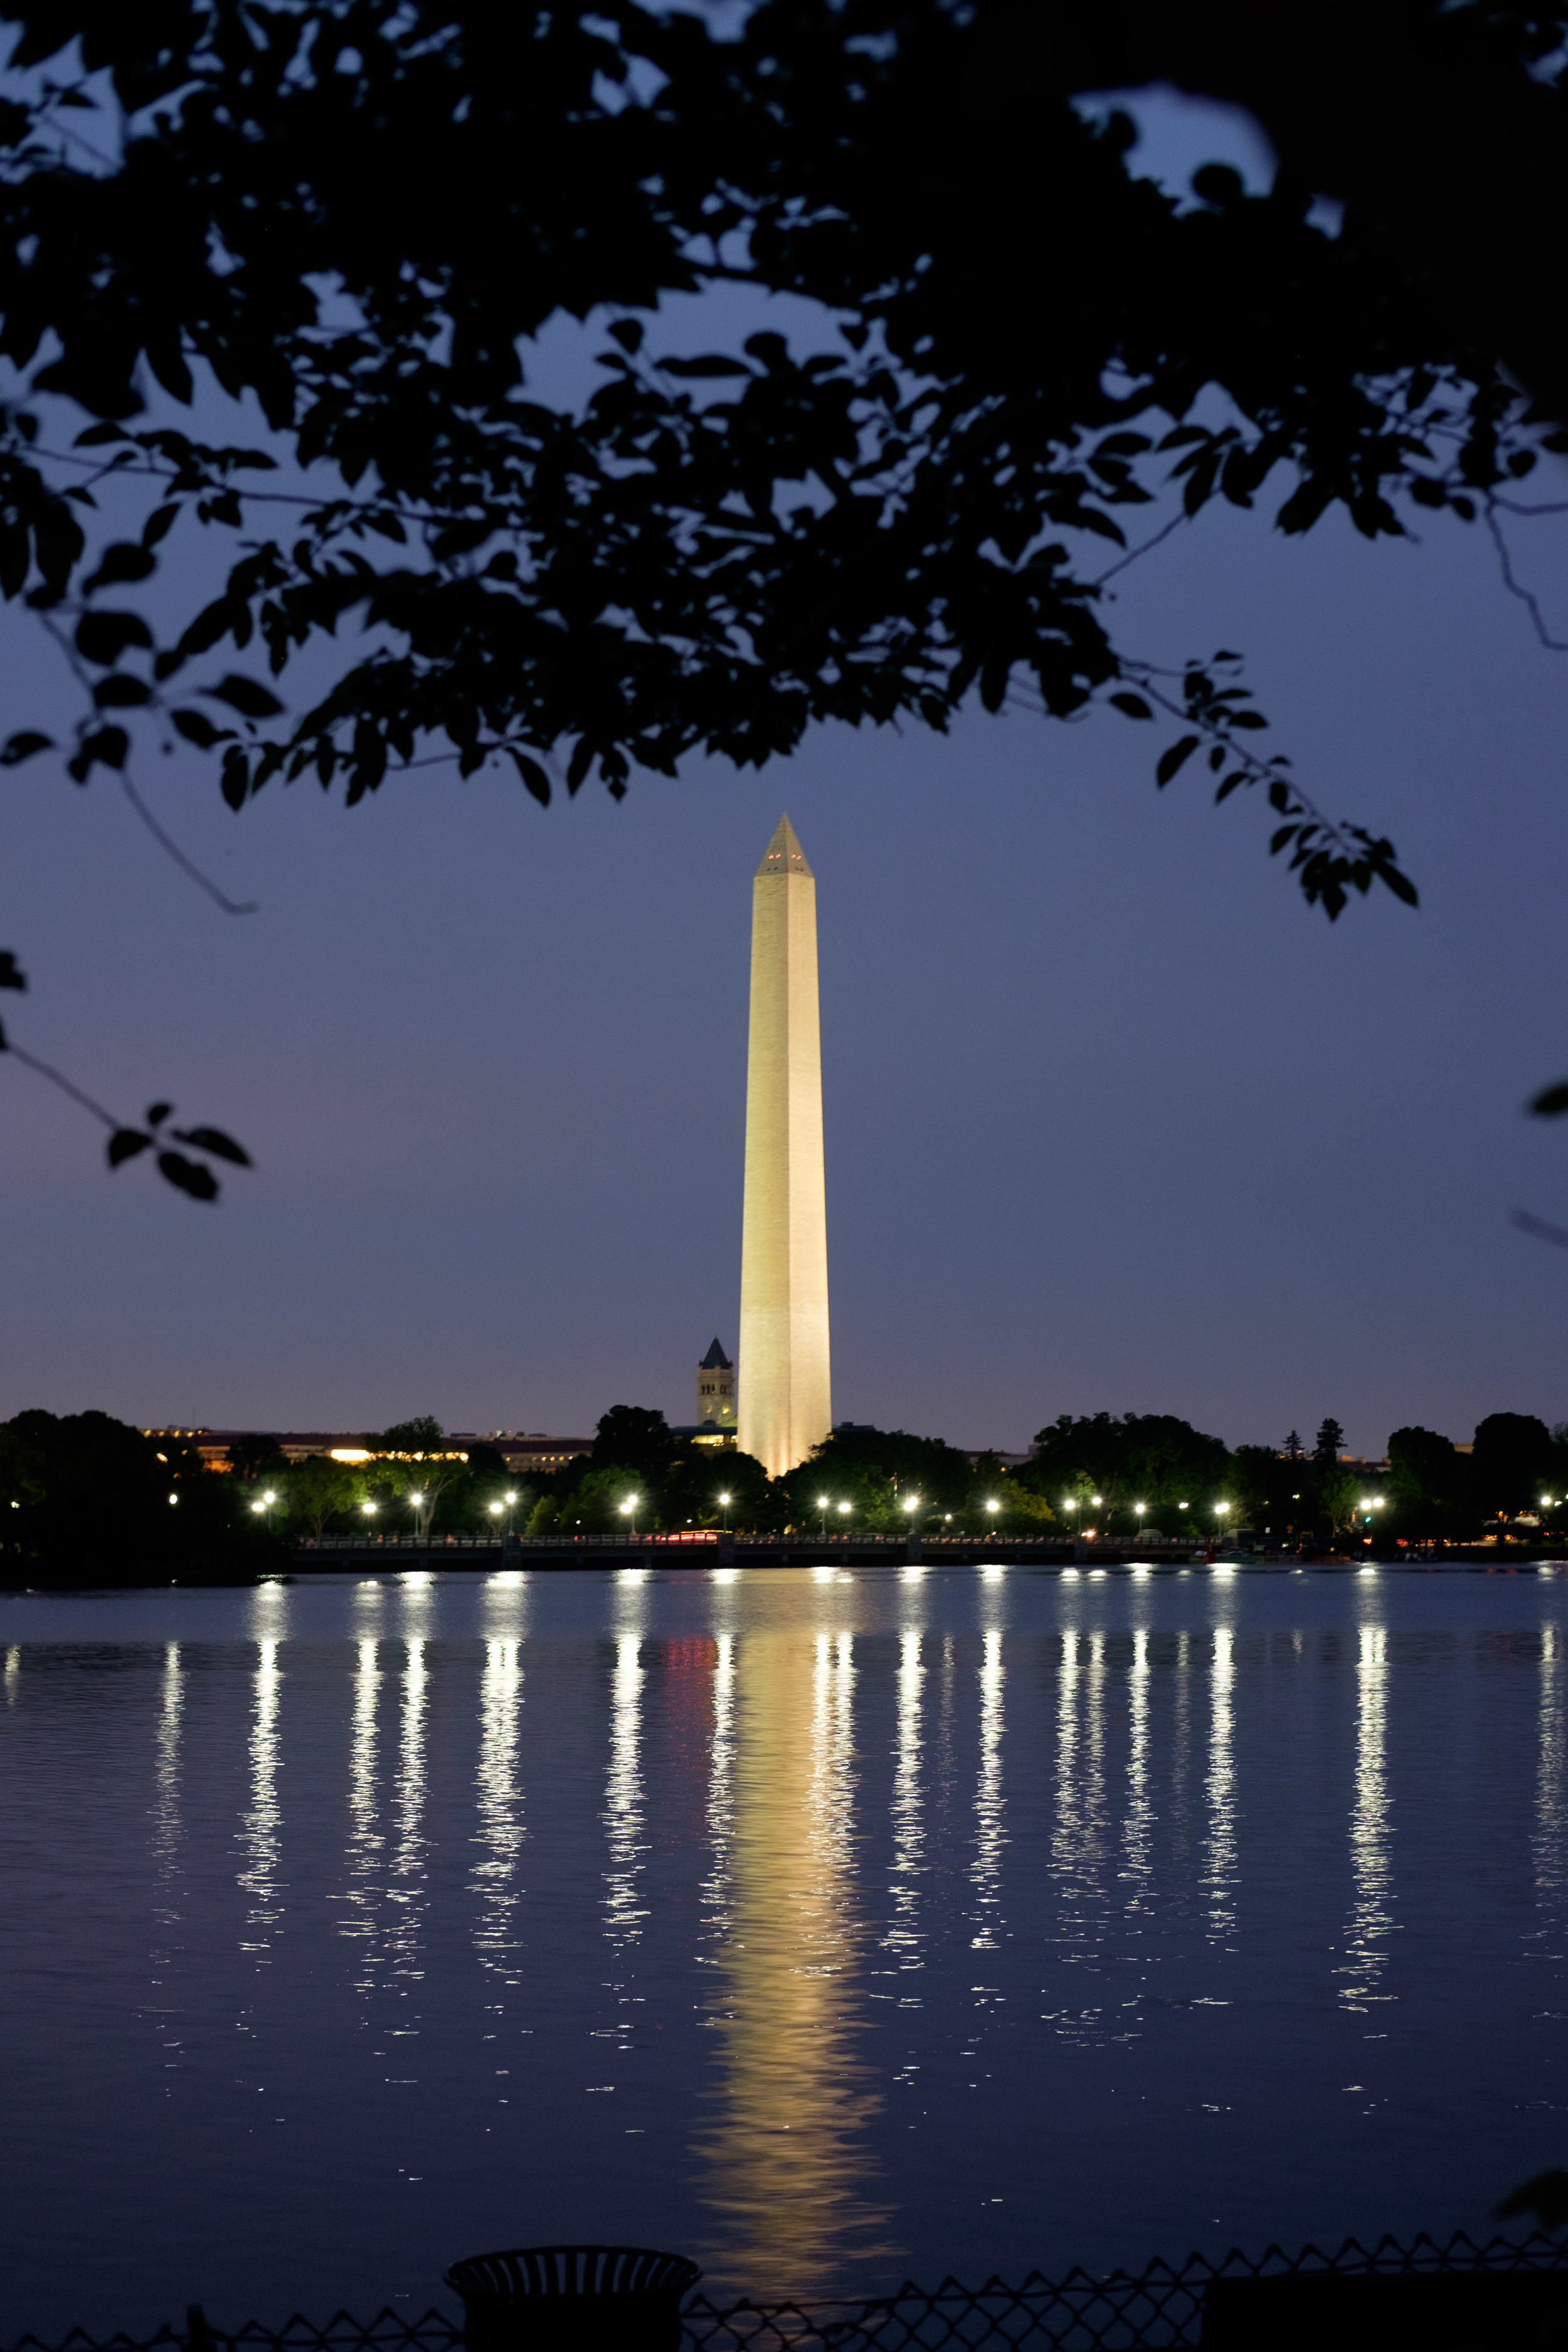 The Washington Monument shot from the MLK Memorial at night